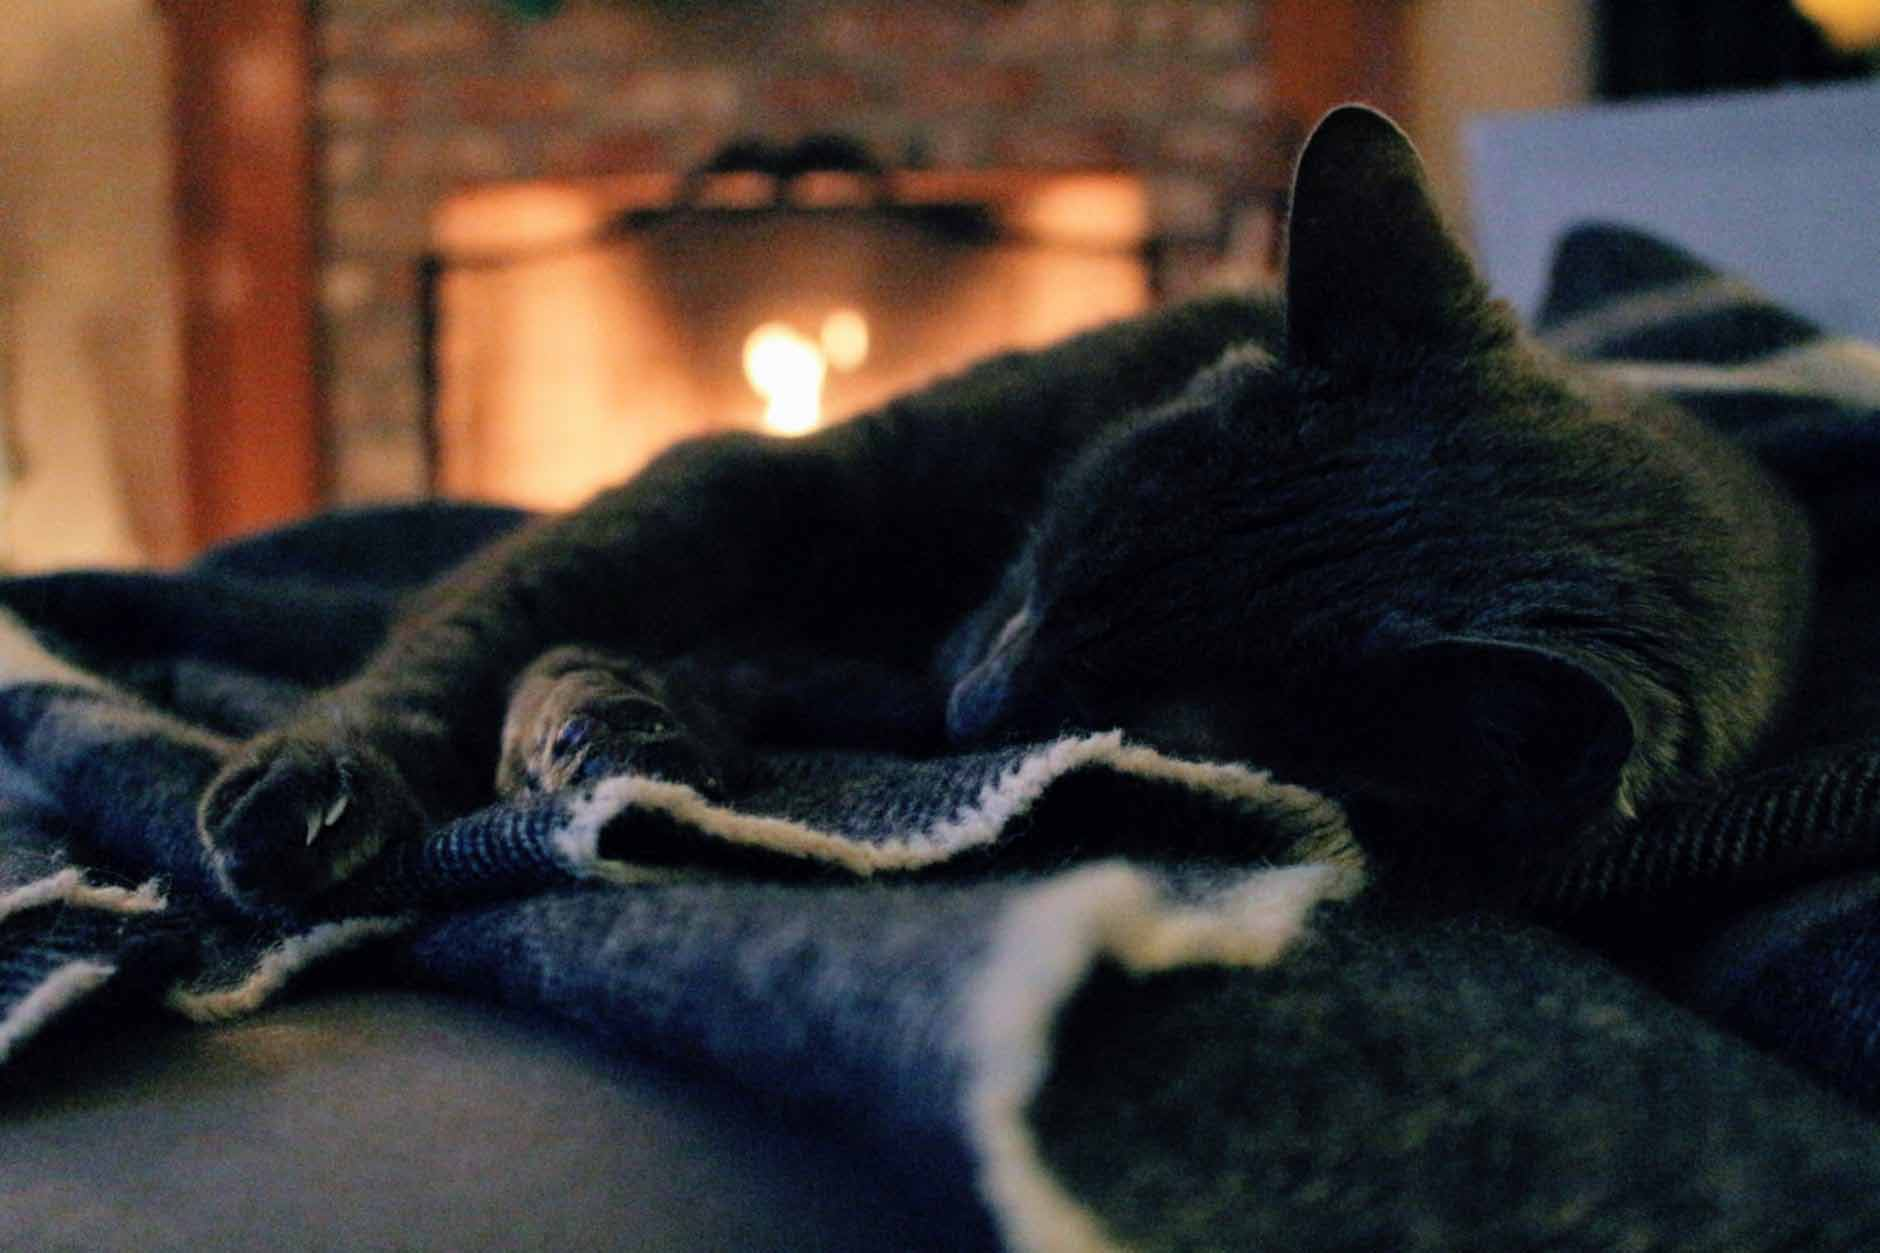 perfect temperature for warm home